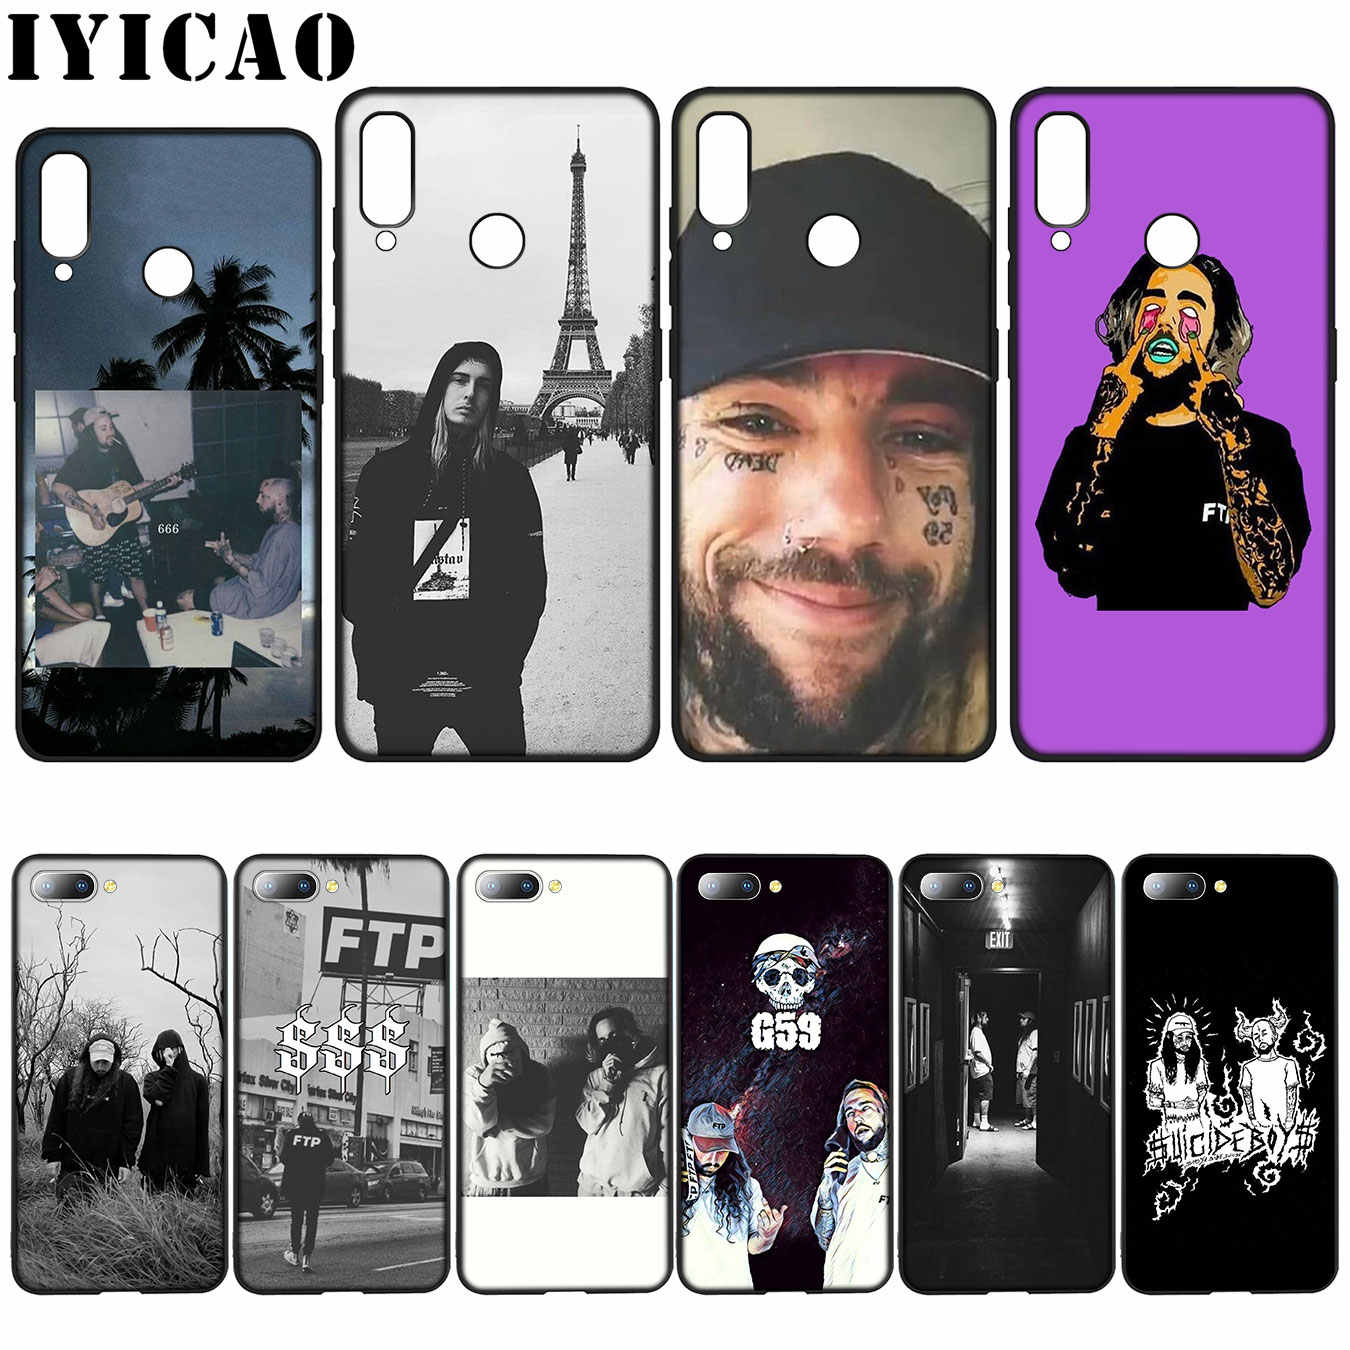 IYICAO Suicideboys FTP G59 High Quality Silicone Case for Huawei Y7 Y6 Prime Y9 2018 Honor 8C 8X 8 9 10 Lite 6A 7C 7X 7A Pro